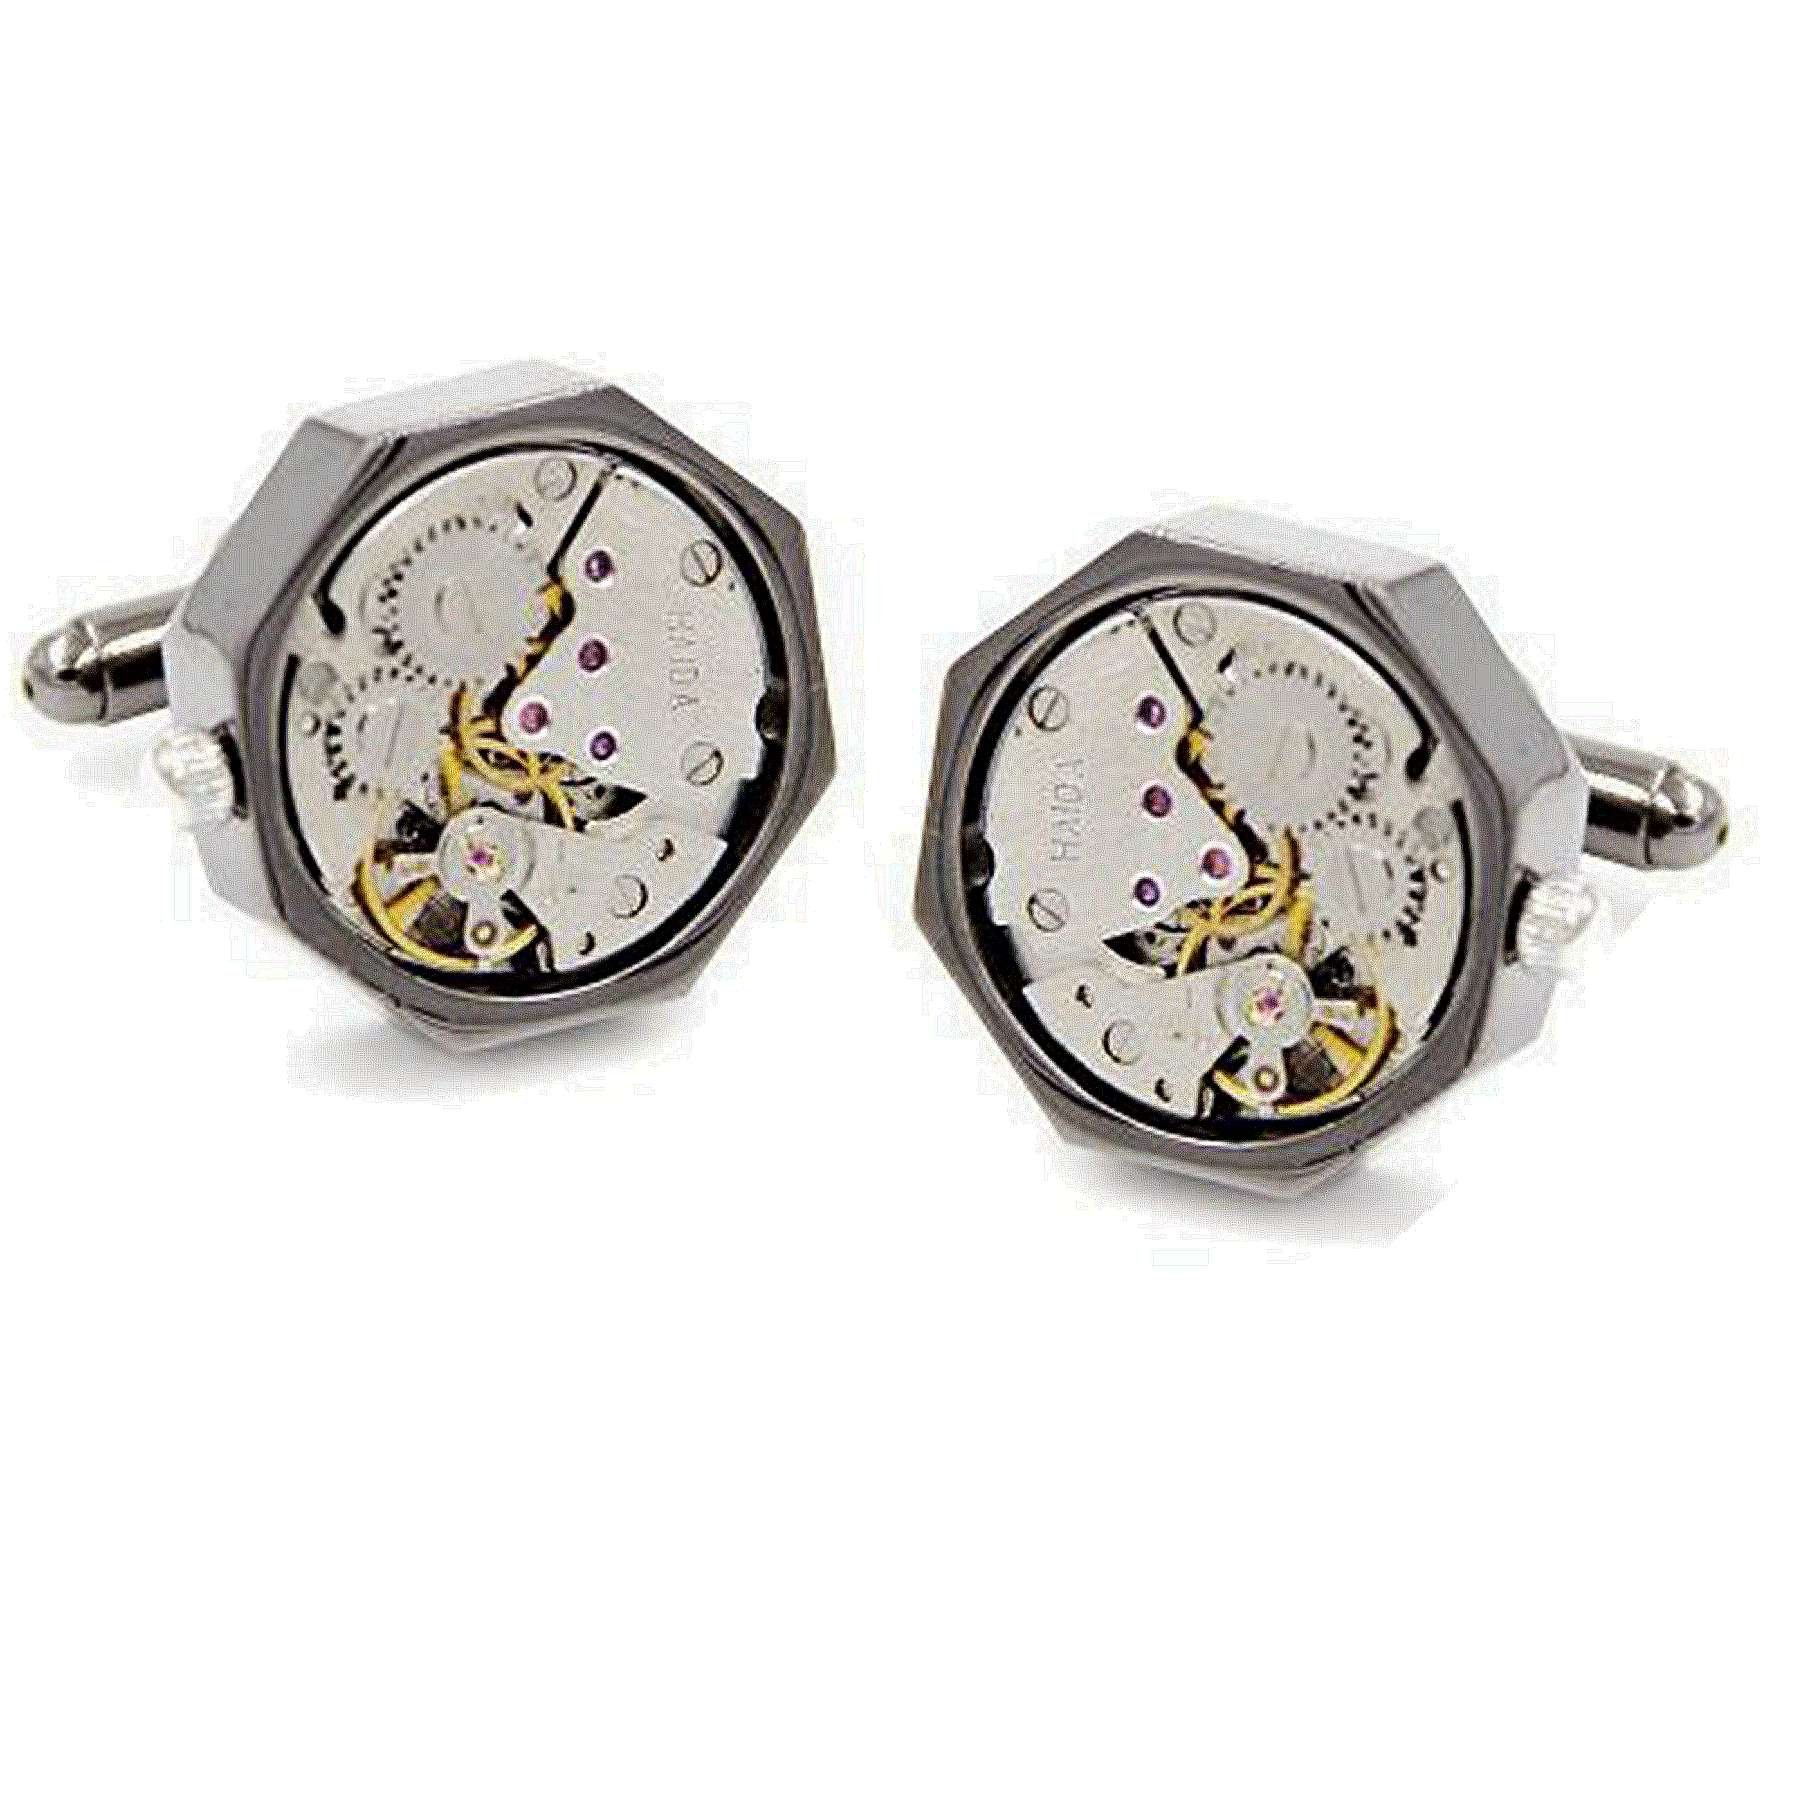 Rxbc2011 Men's Watch Movement Steampunk Style French Shirts Cufflinks 1 Pair Set